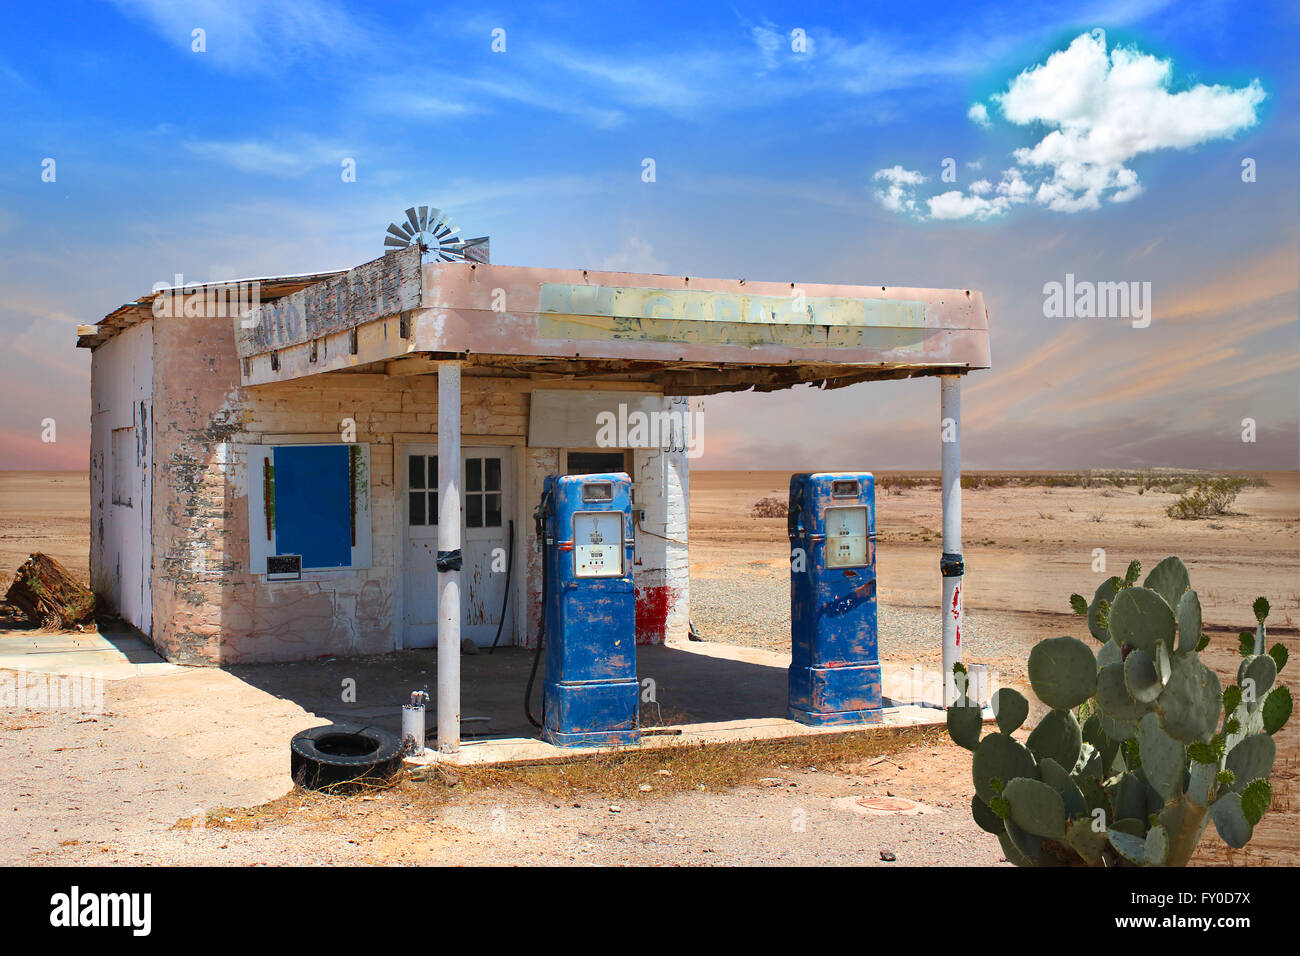 1940s Gas Station High Resolution Stock Photography And Images Alamy